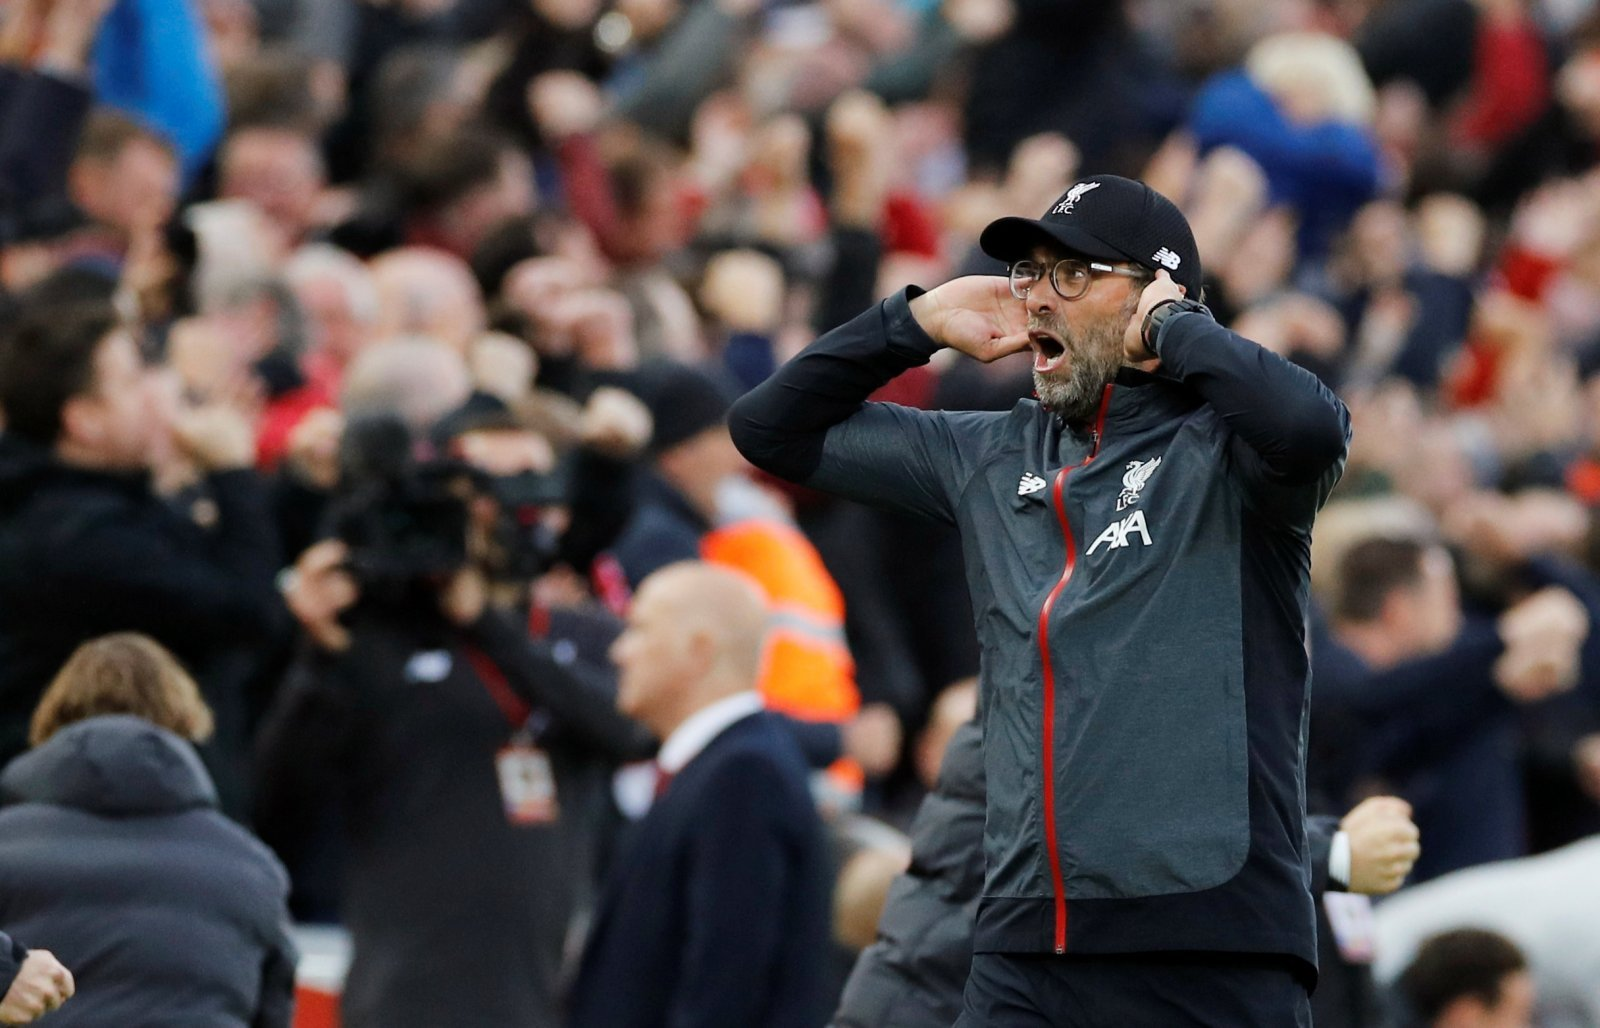 Liverpool: Fans believe Reds can win Premier League with reliance on late goals